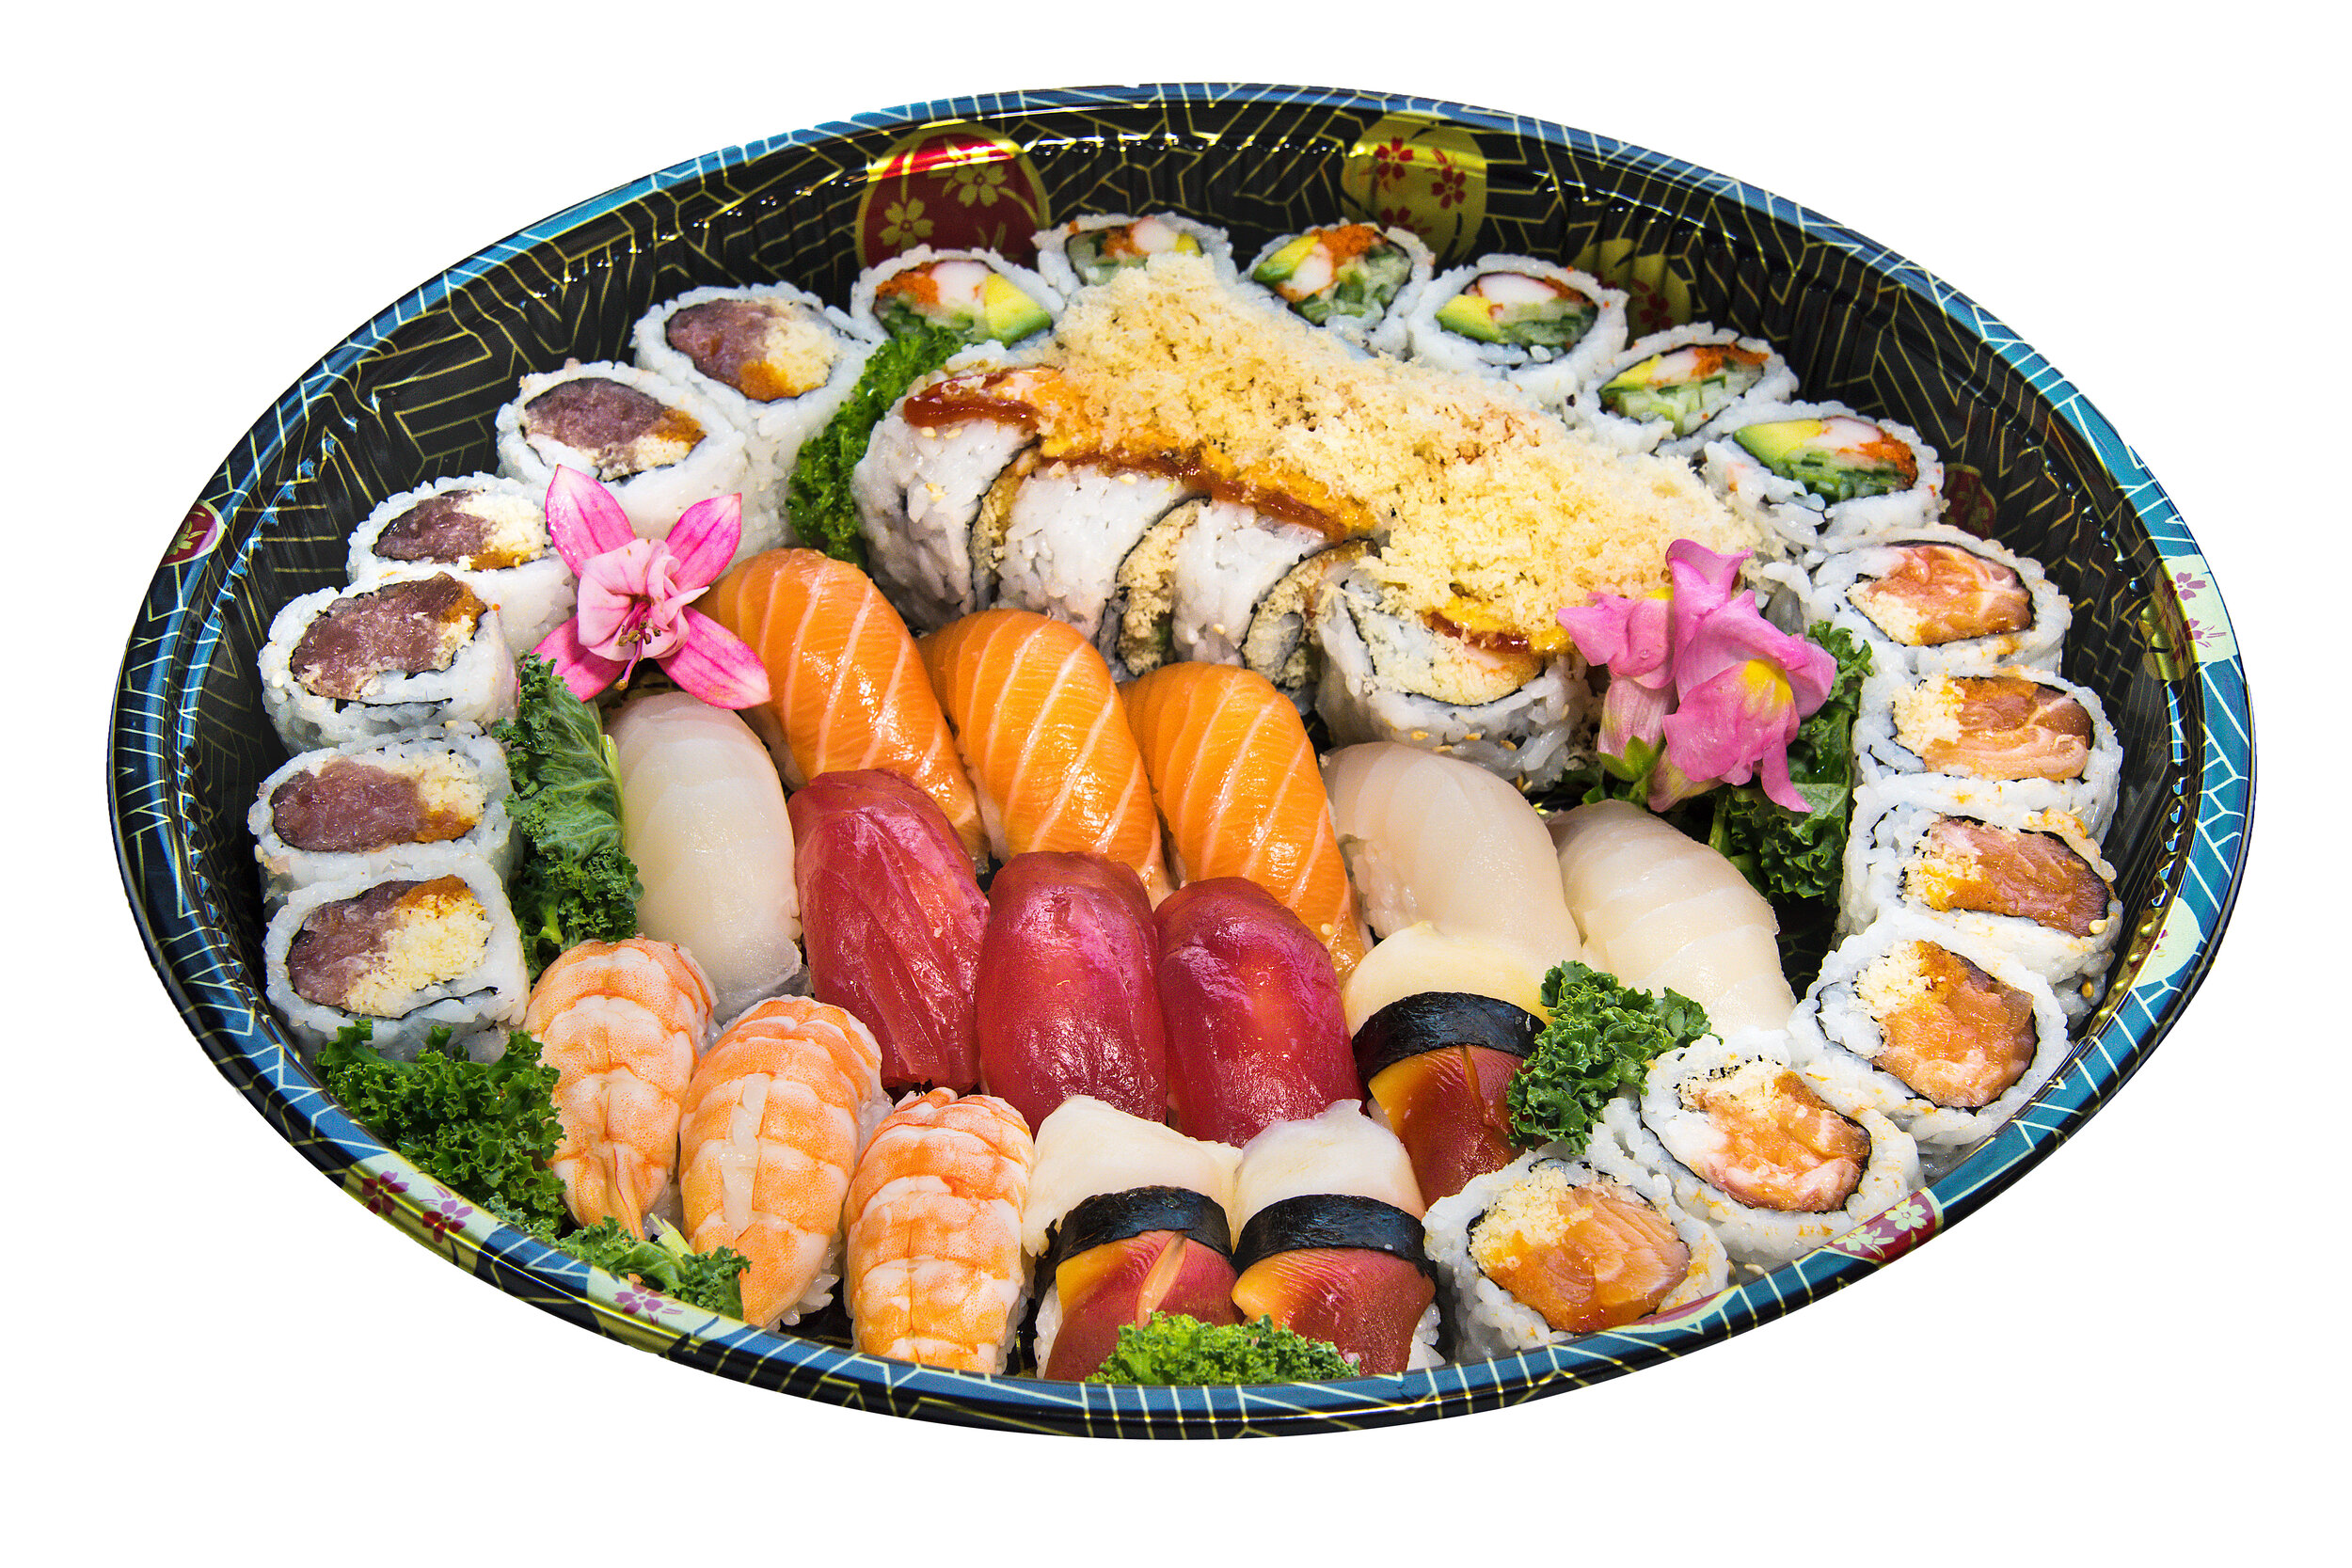 Party Tray A5 Sushi + Rolls    Sushi (15) Volcano Roll (8) Spicy Salmon Roll (6) Spicy Tuna Roll (6) California (6)